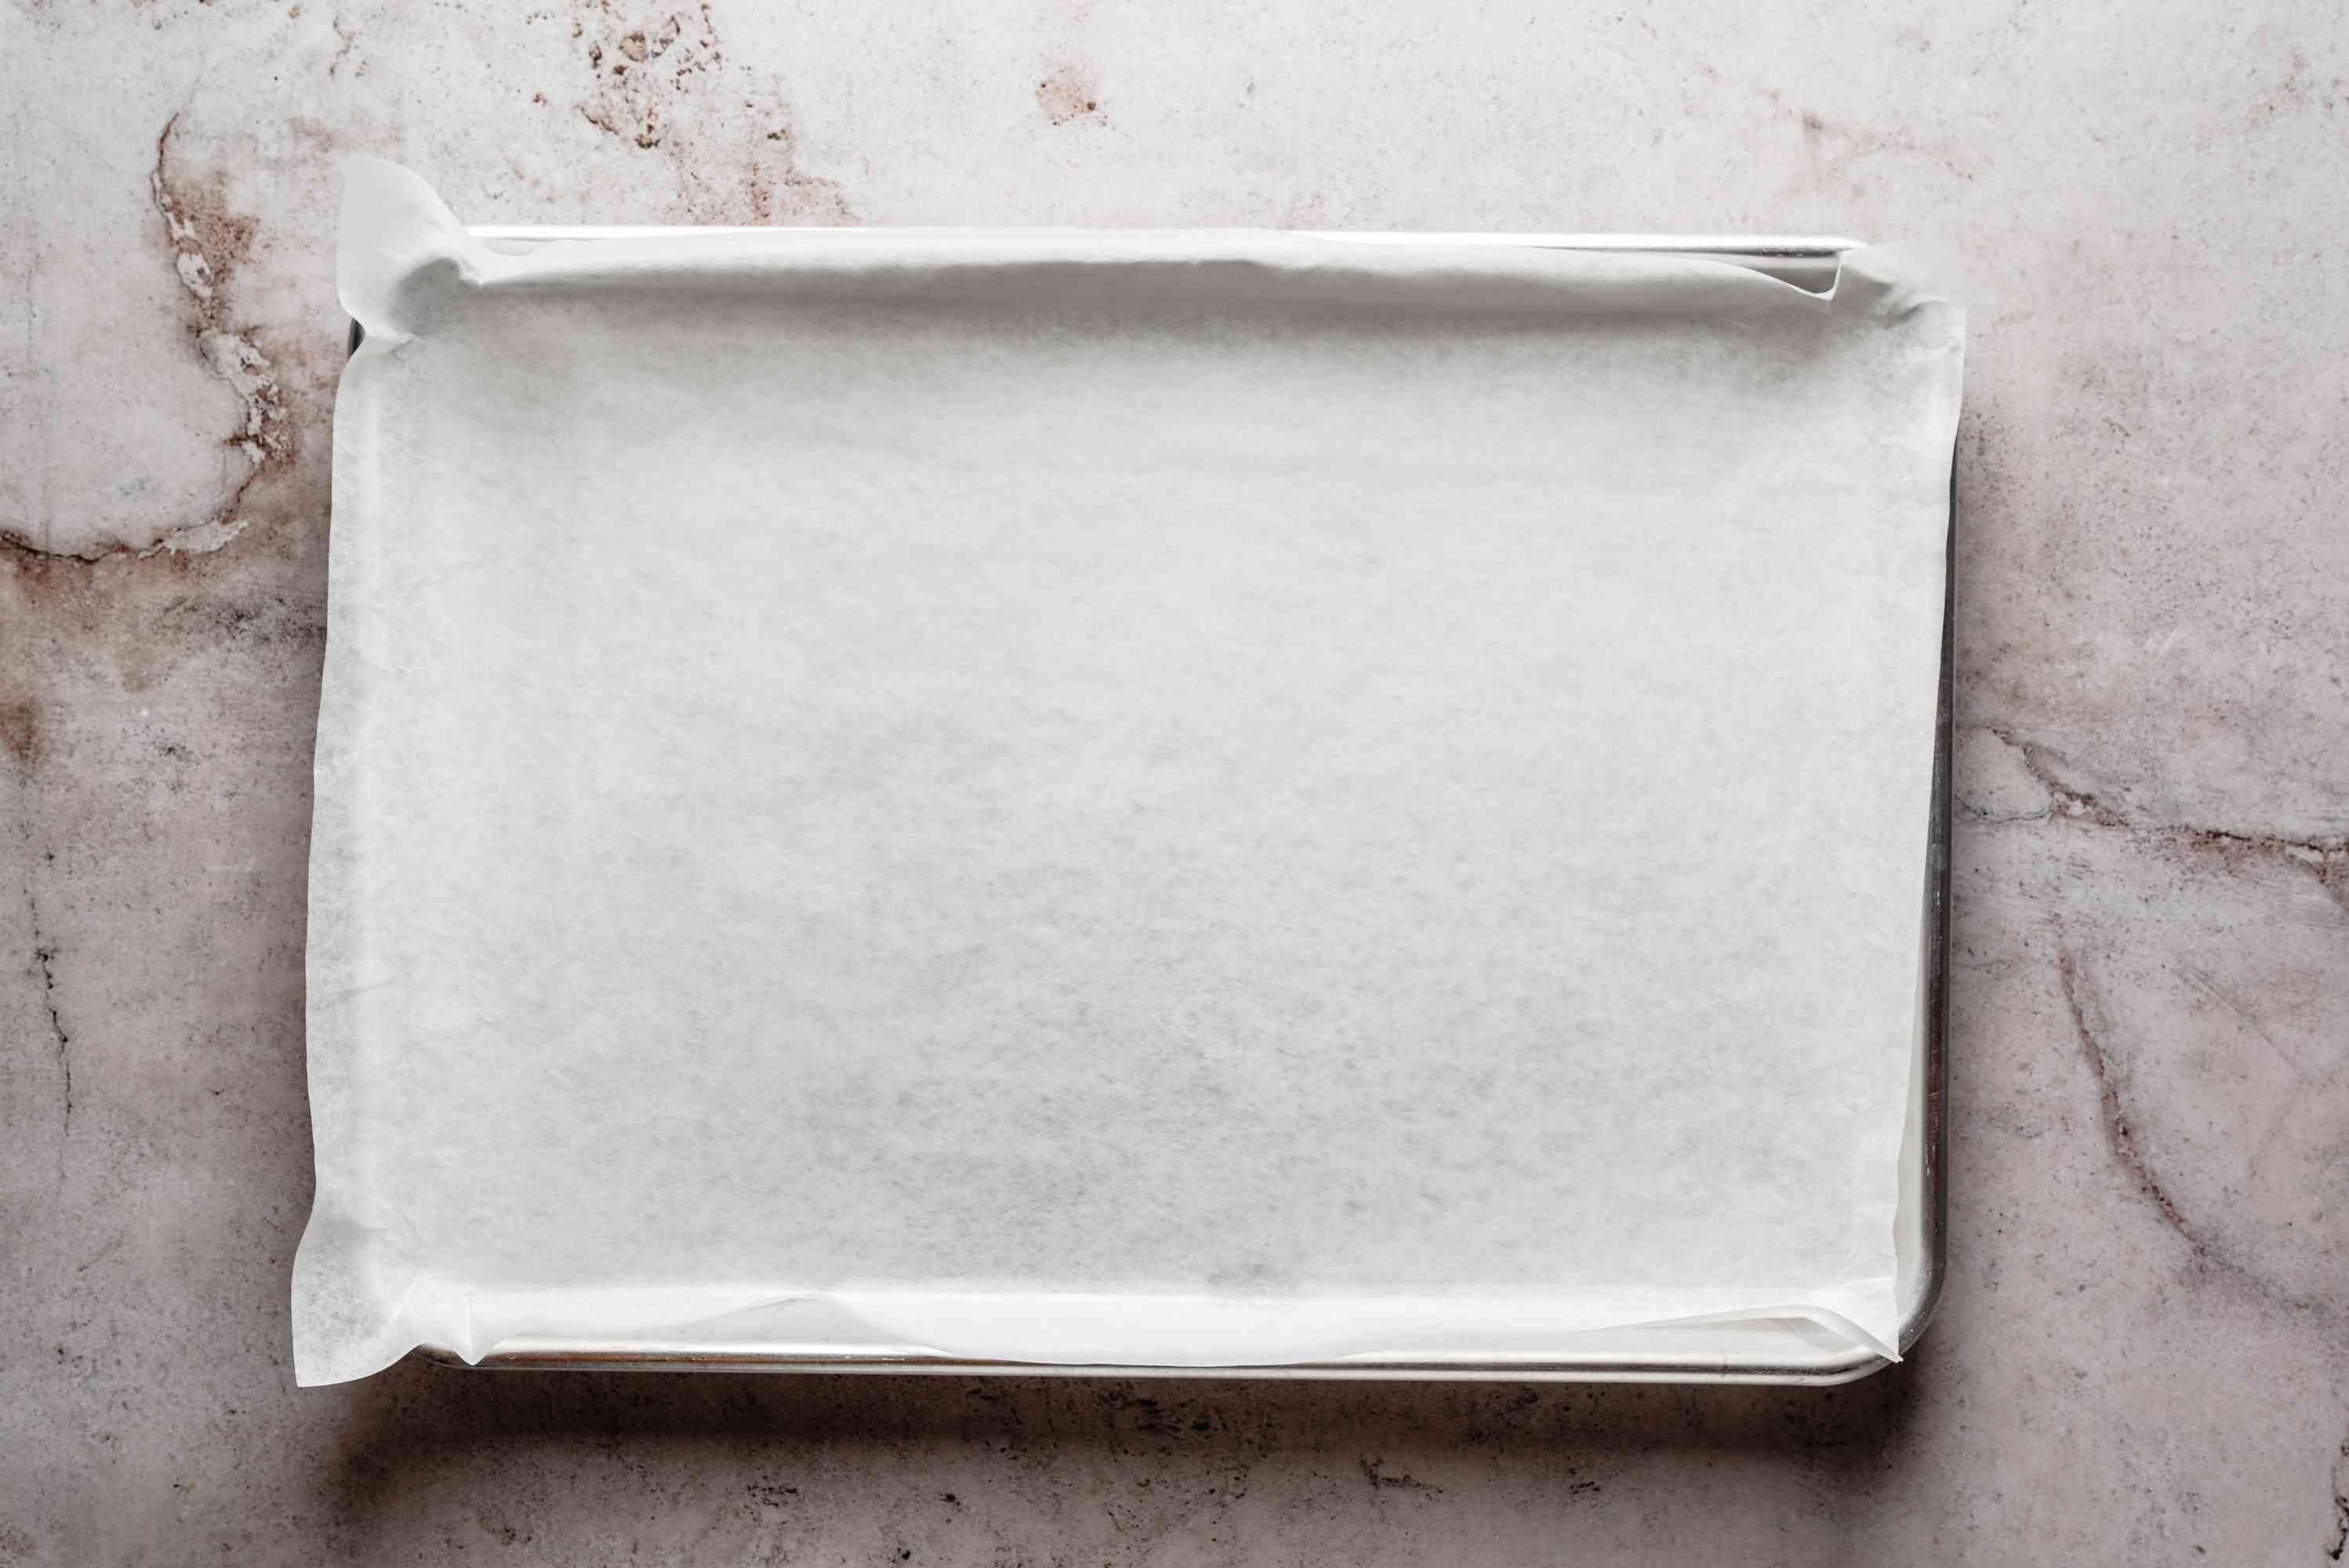 Prepare a baking sheet by lining it with parchment paper